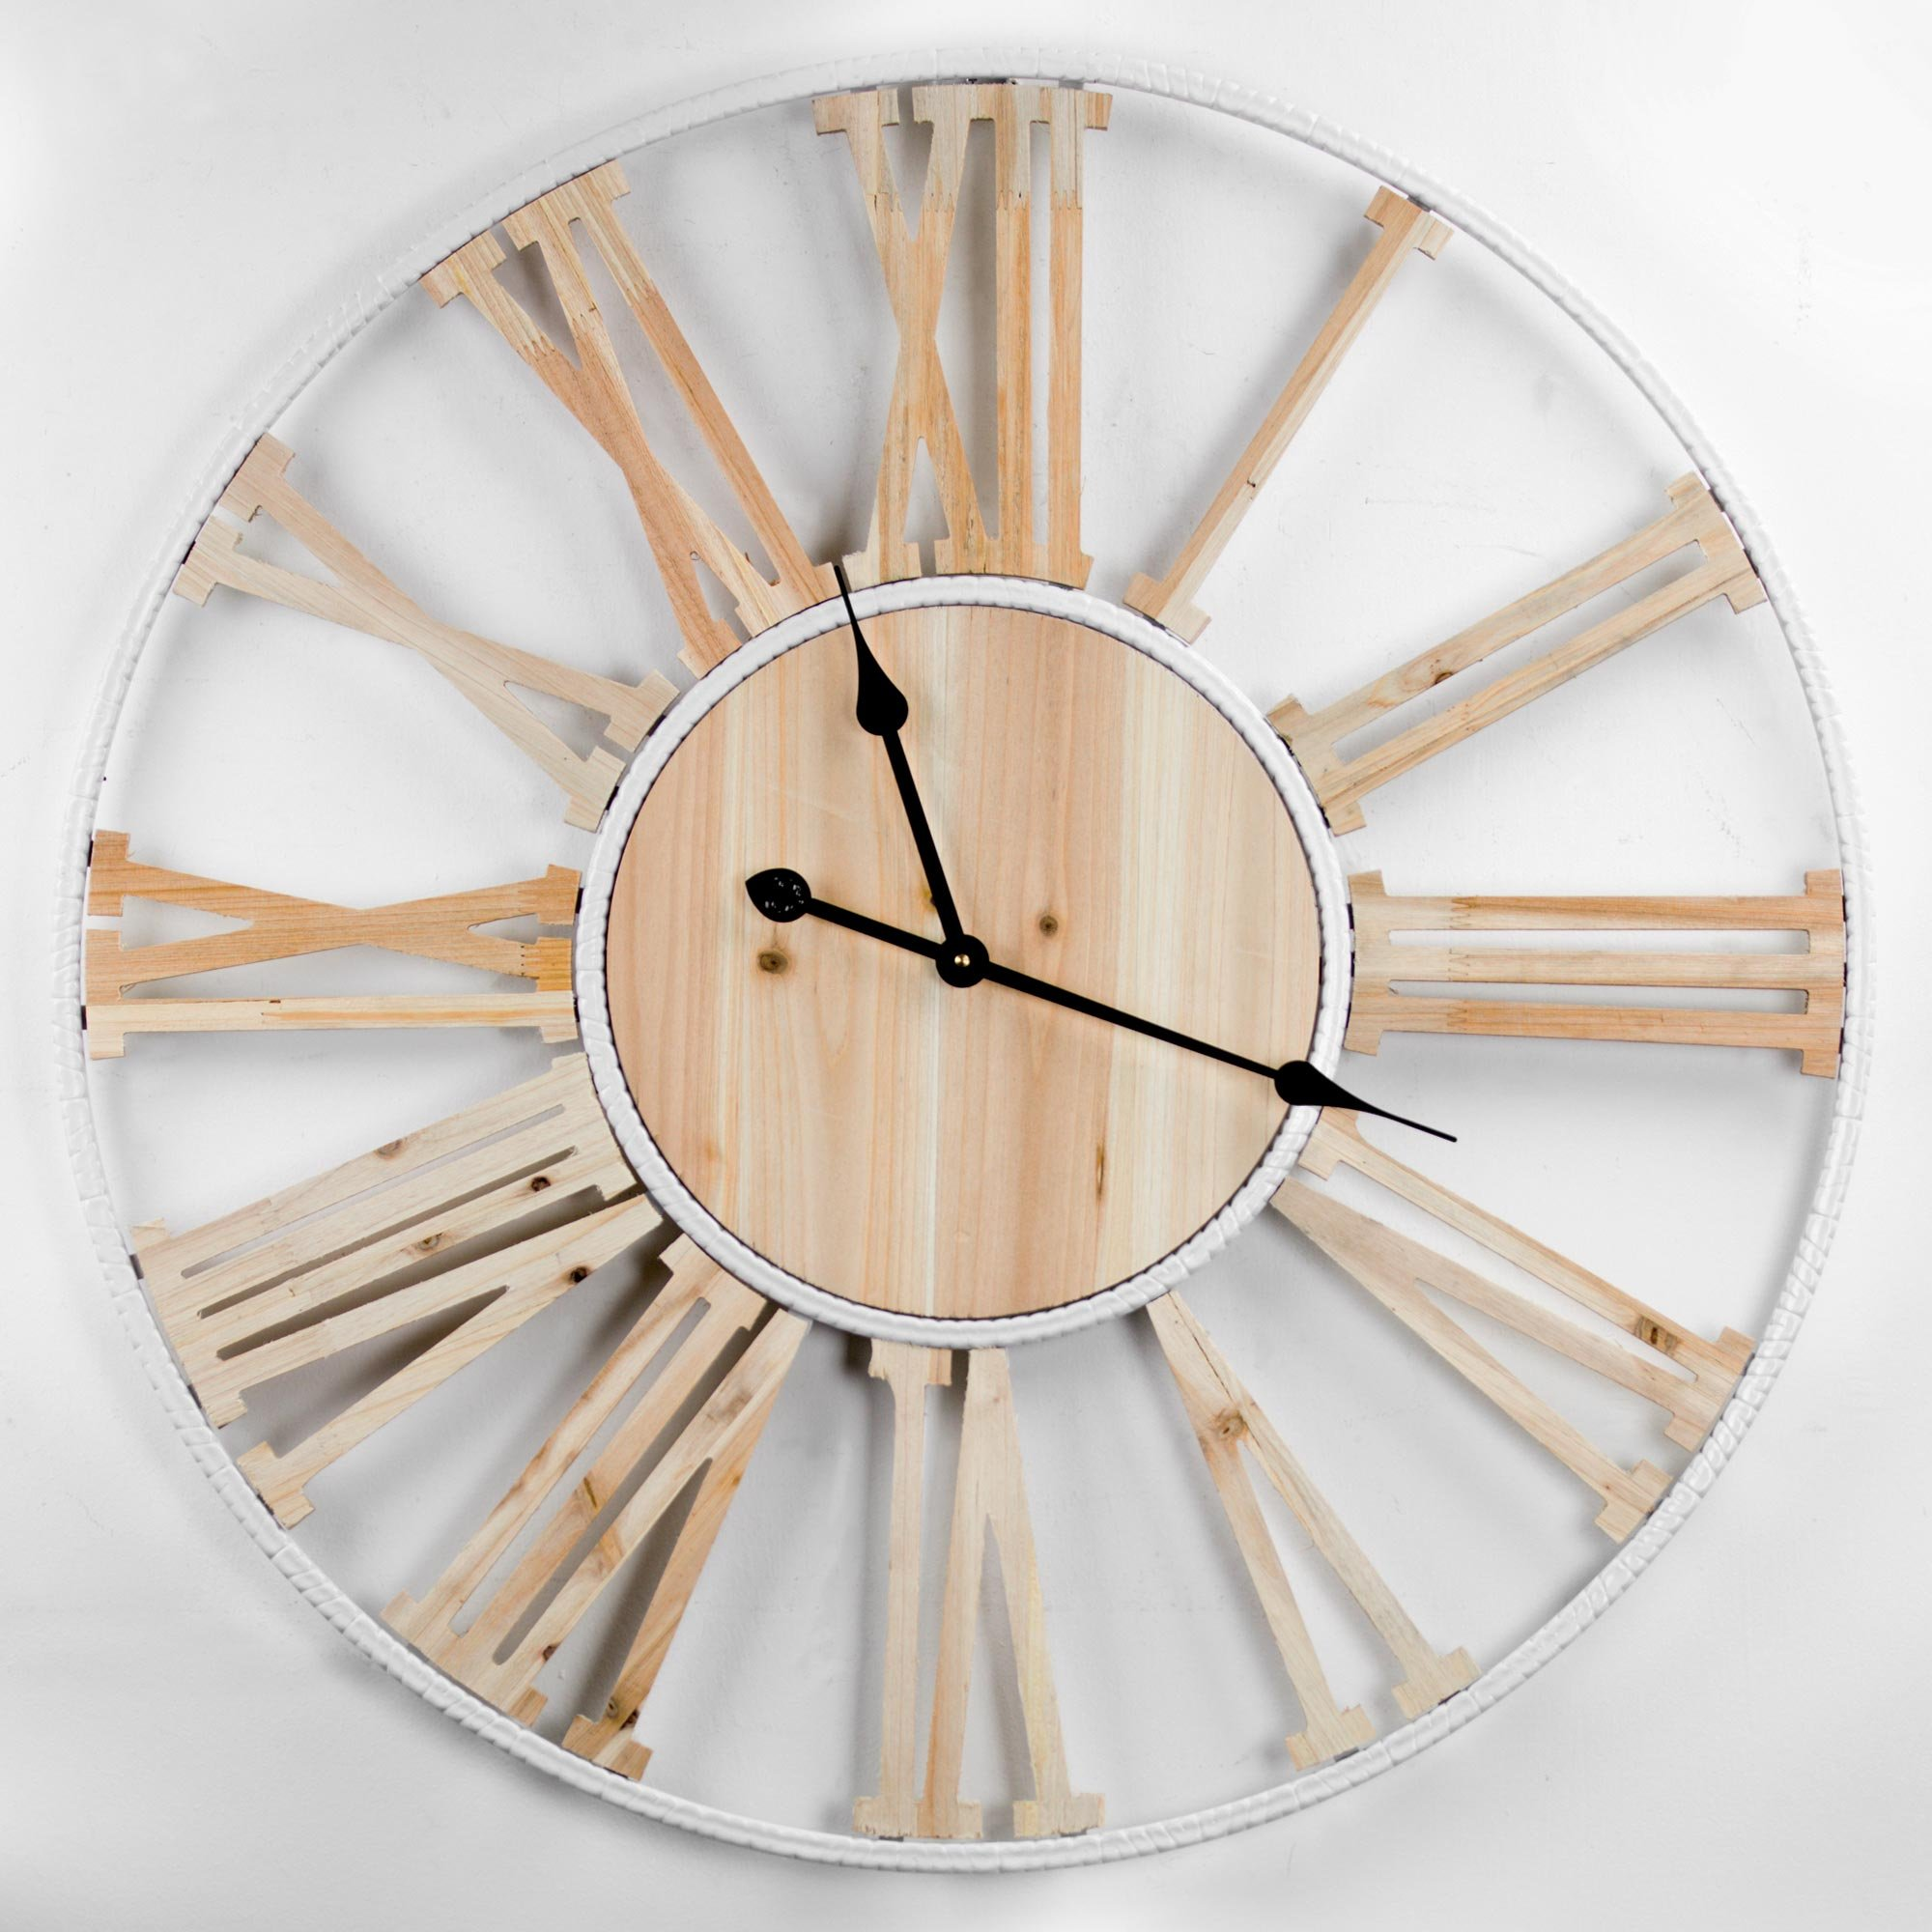 American Art Décor Natural Wood and White Metal Open Round Analog Wall Clock with Roman Numerals Metal Hands Battery Operated Farmhouse Kitchen Living Room Dining Room Farmhouse Decor